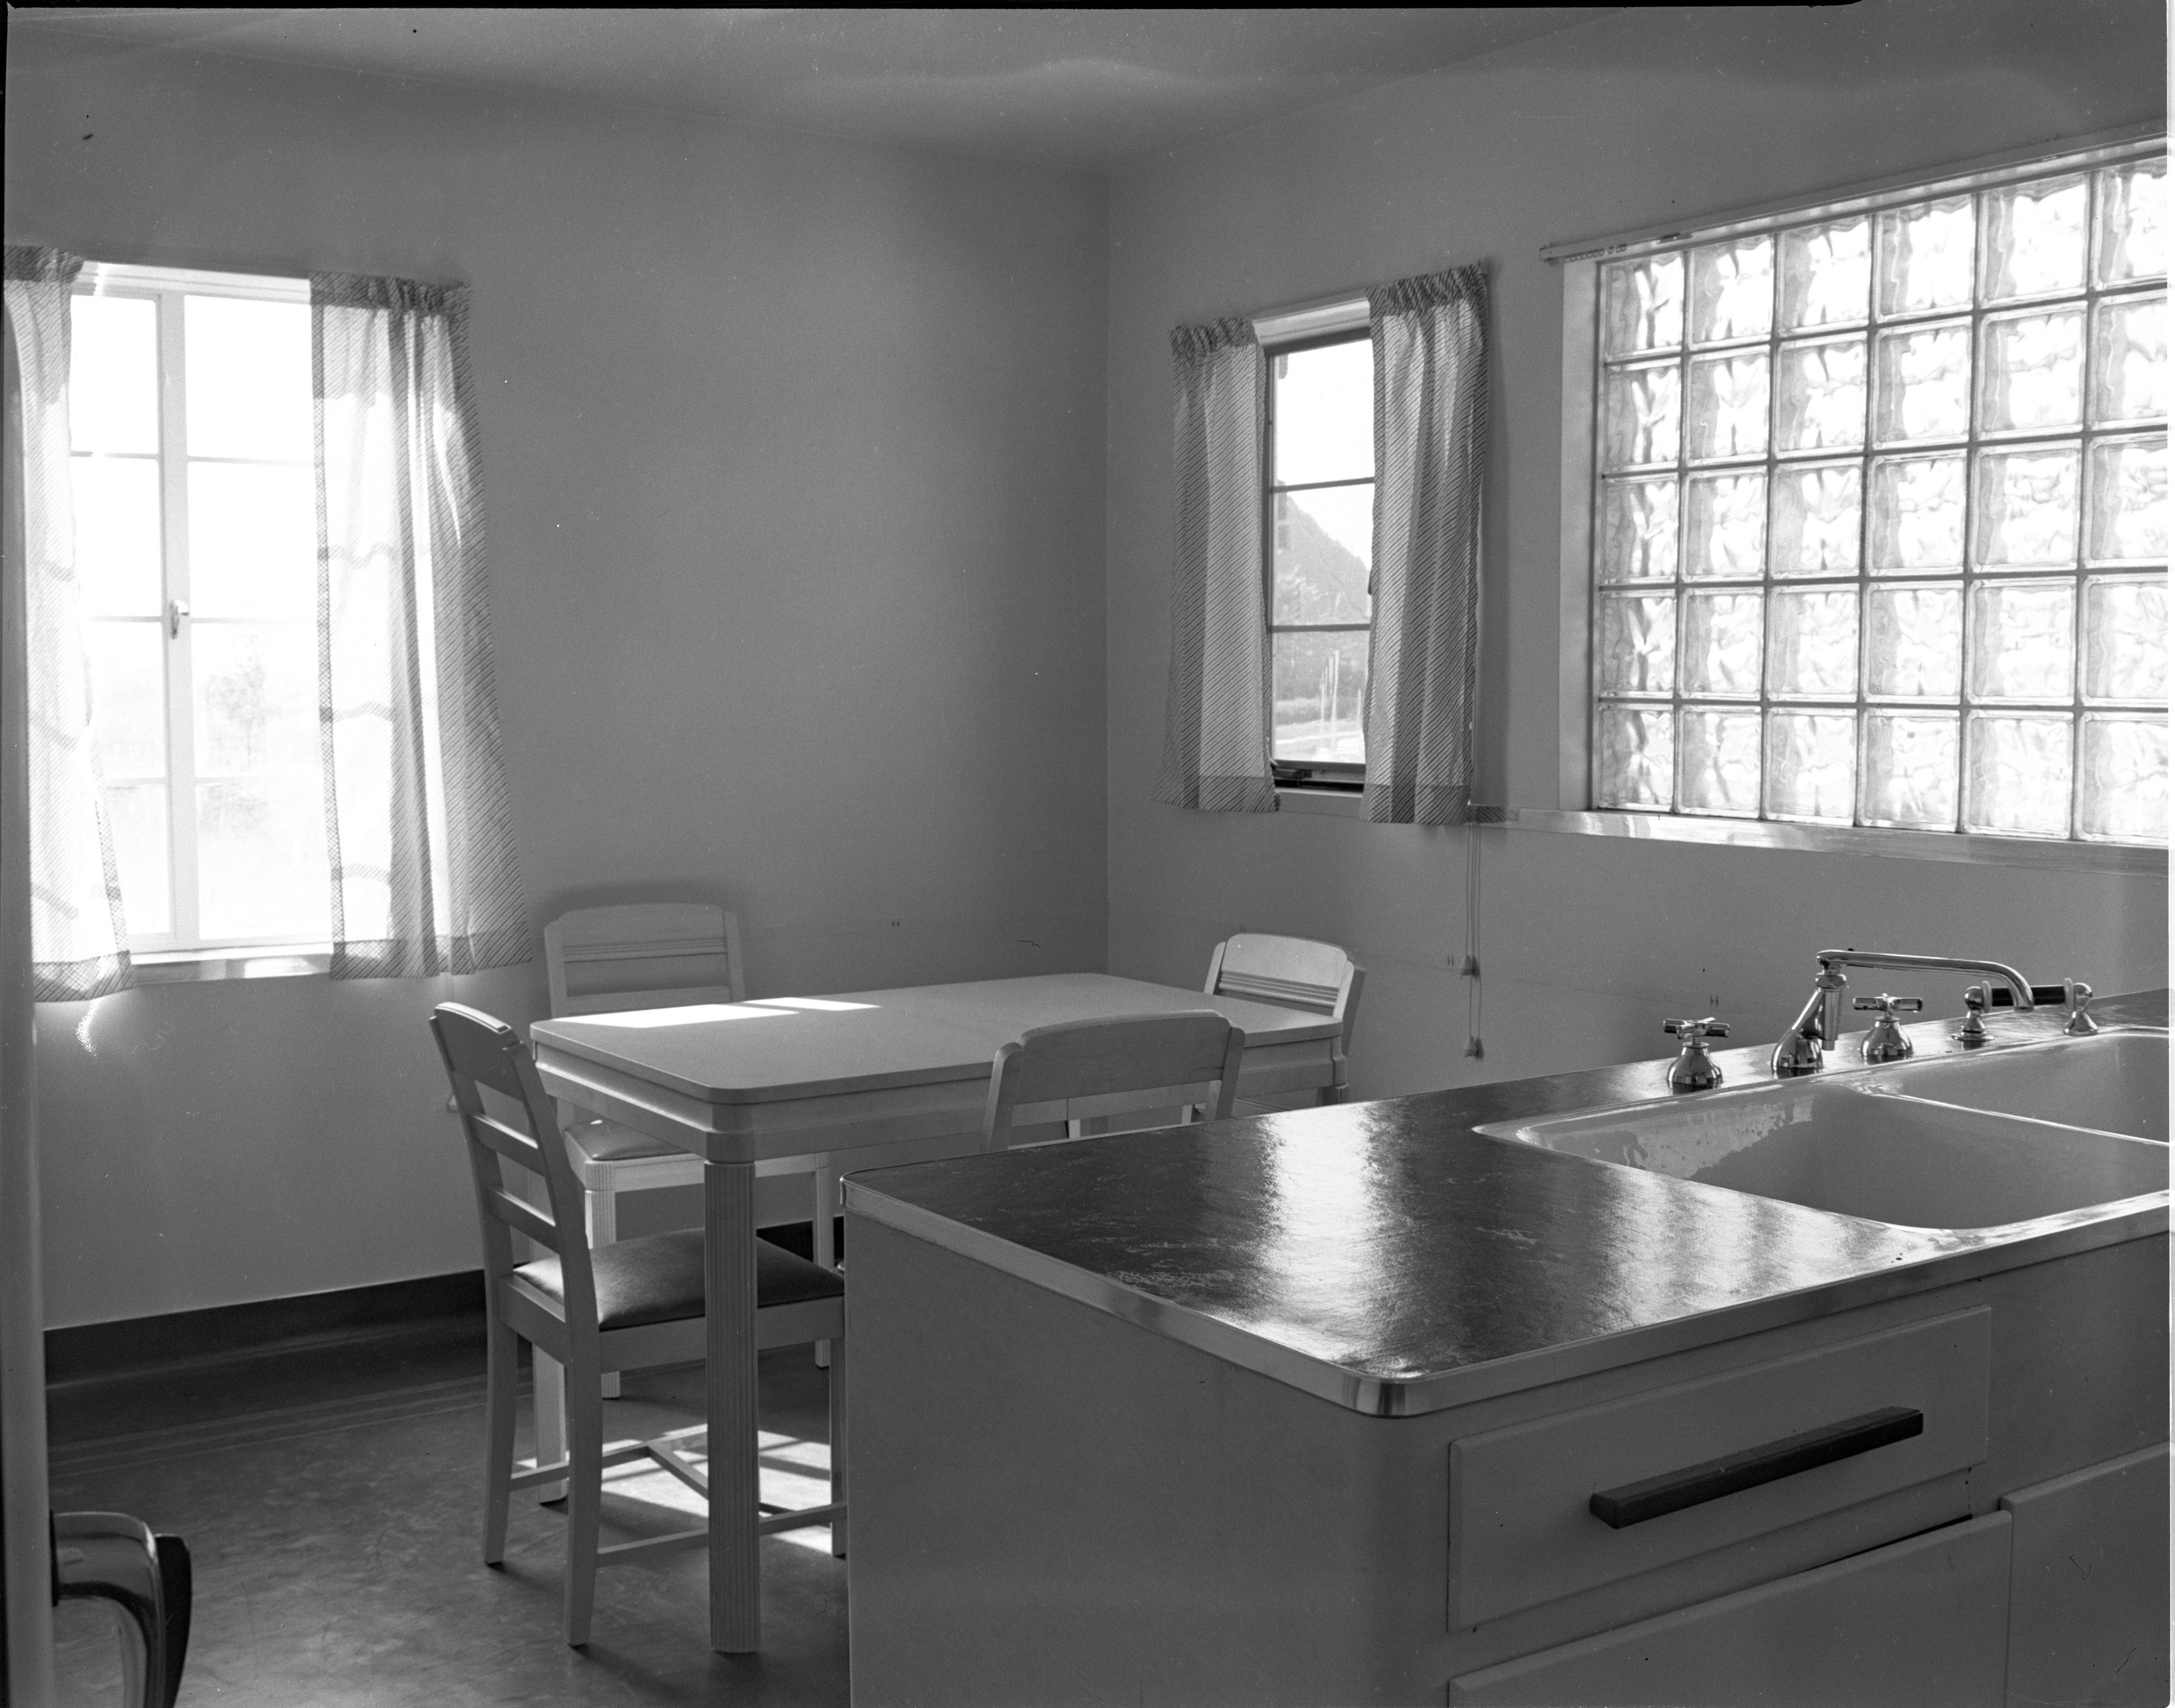 Kitchen-Dinette Of Newly Built 1449 Greenview Drive, October 1938 image